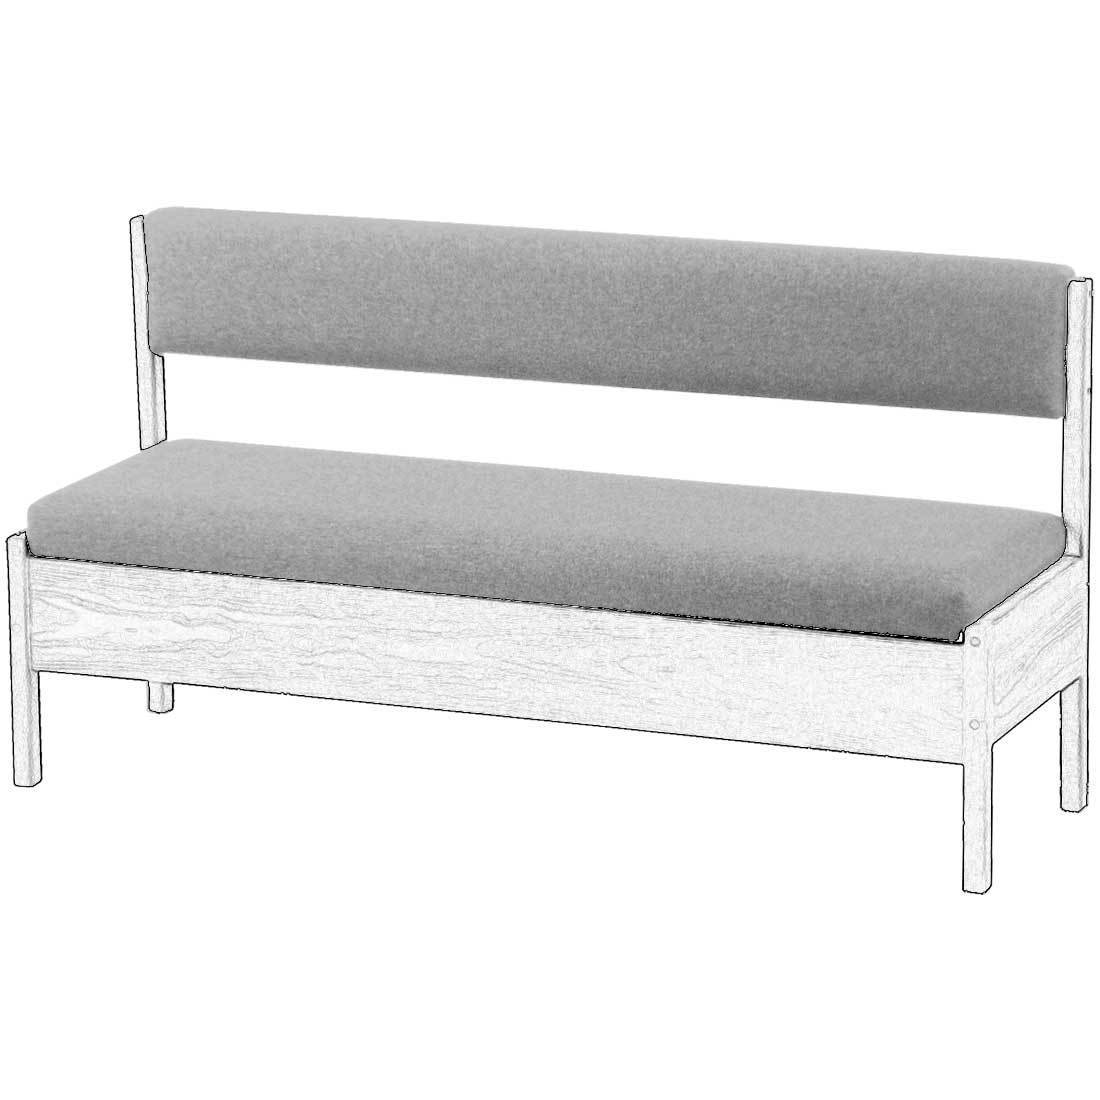 Upholstered Components for Storage Bench with Back - 10in Wide - Foundation  Fabric